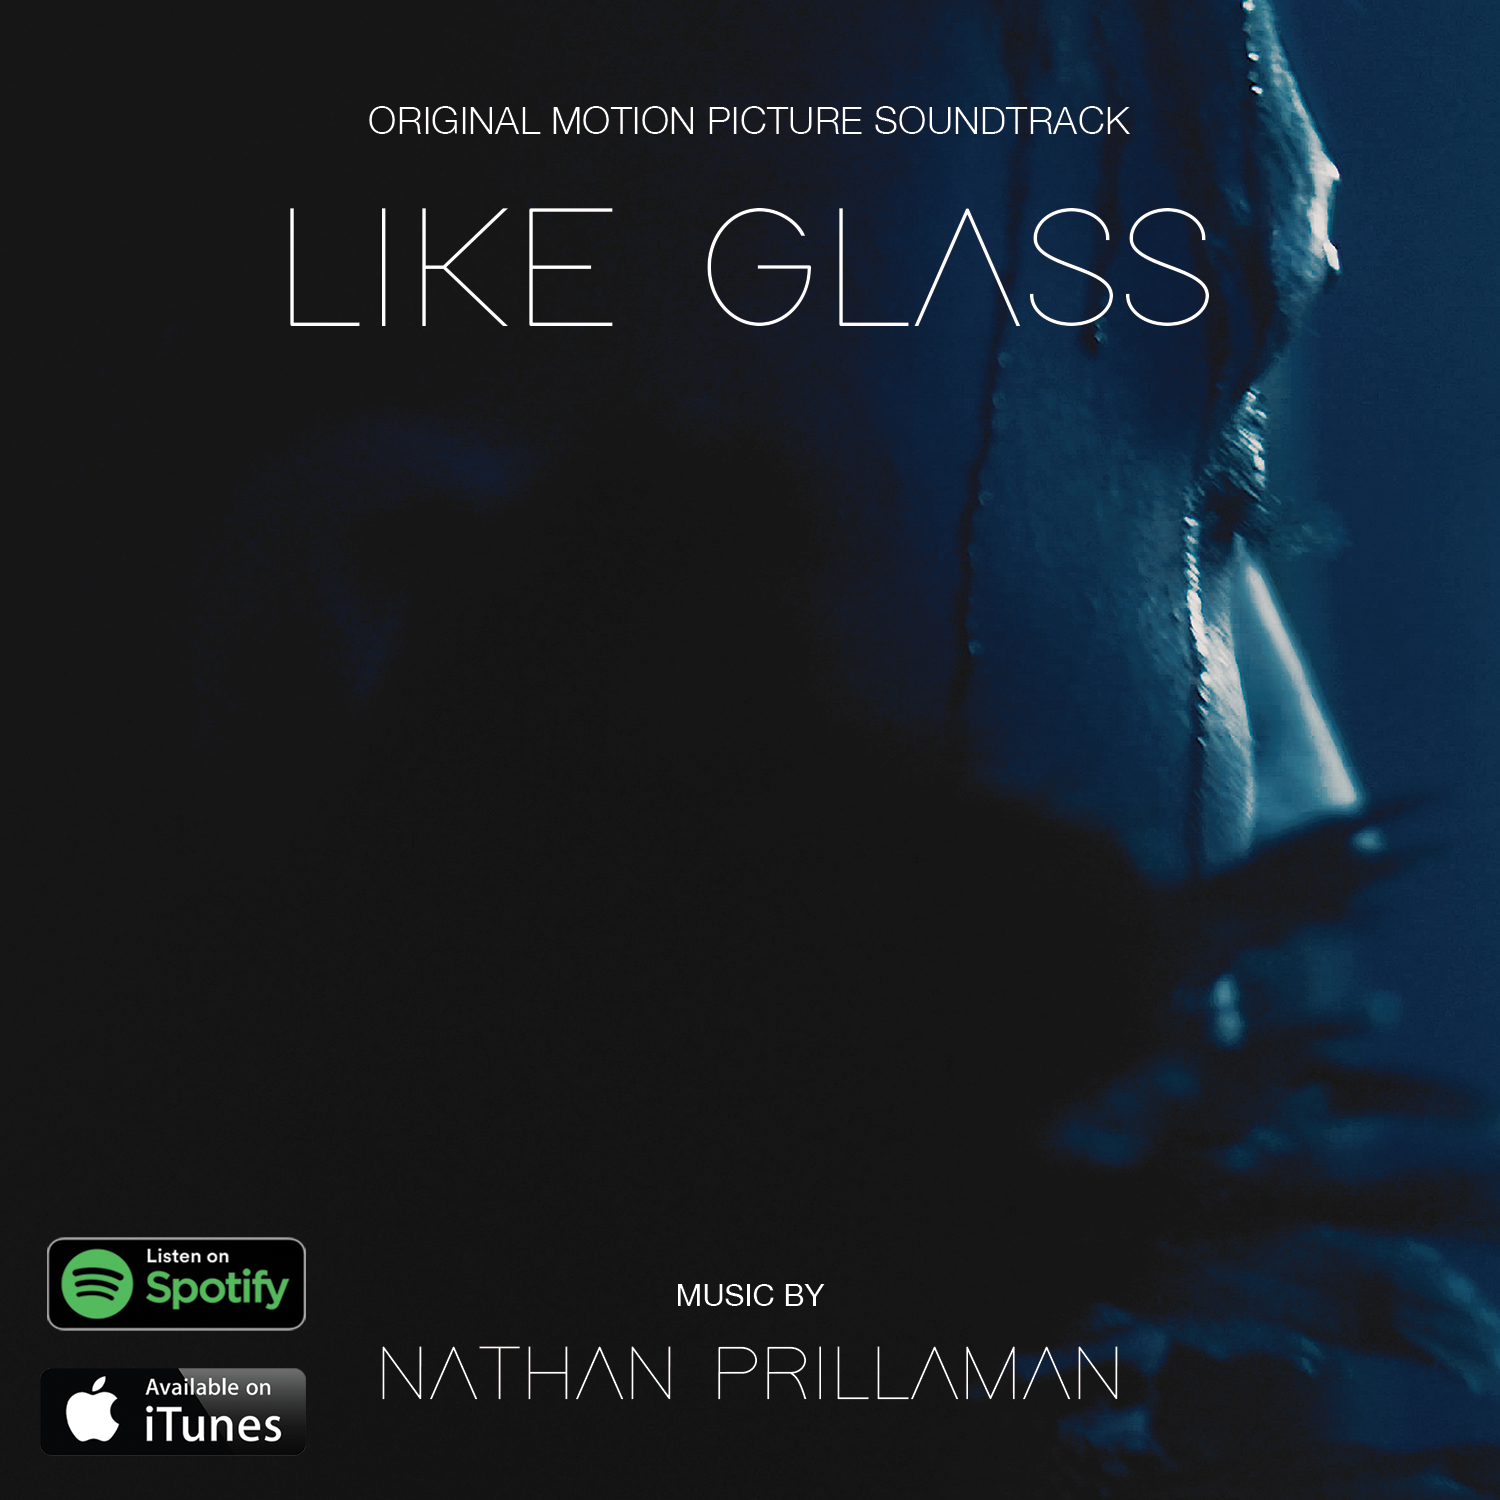 Like Glass Original Motion Picture Soundtrack